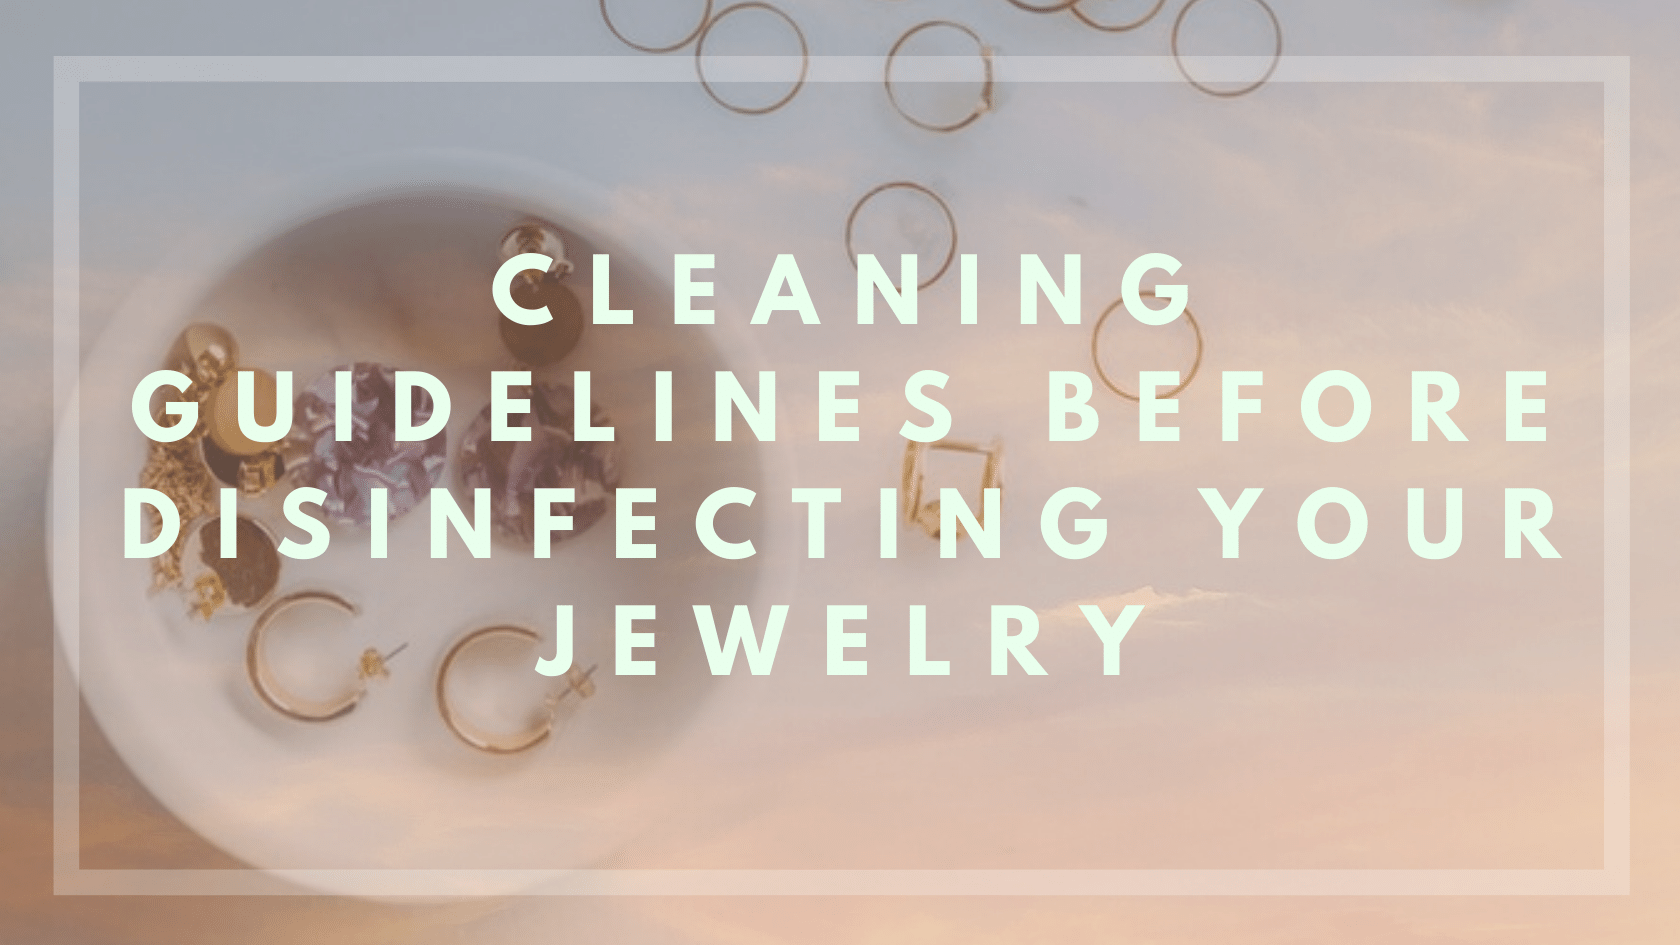 Read These COVID-19 Cleaning Guidelines BEFORE Disinfecting Your Jewelry!